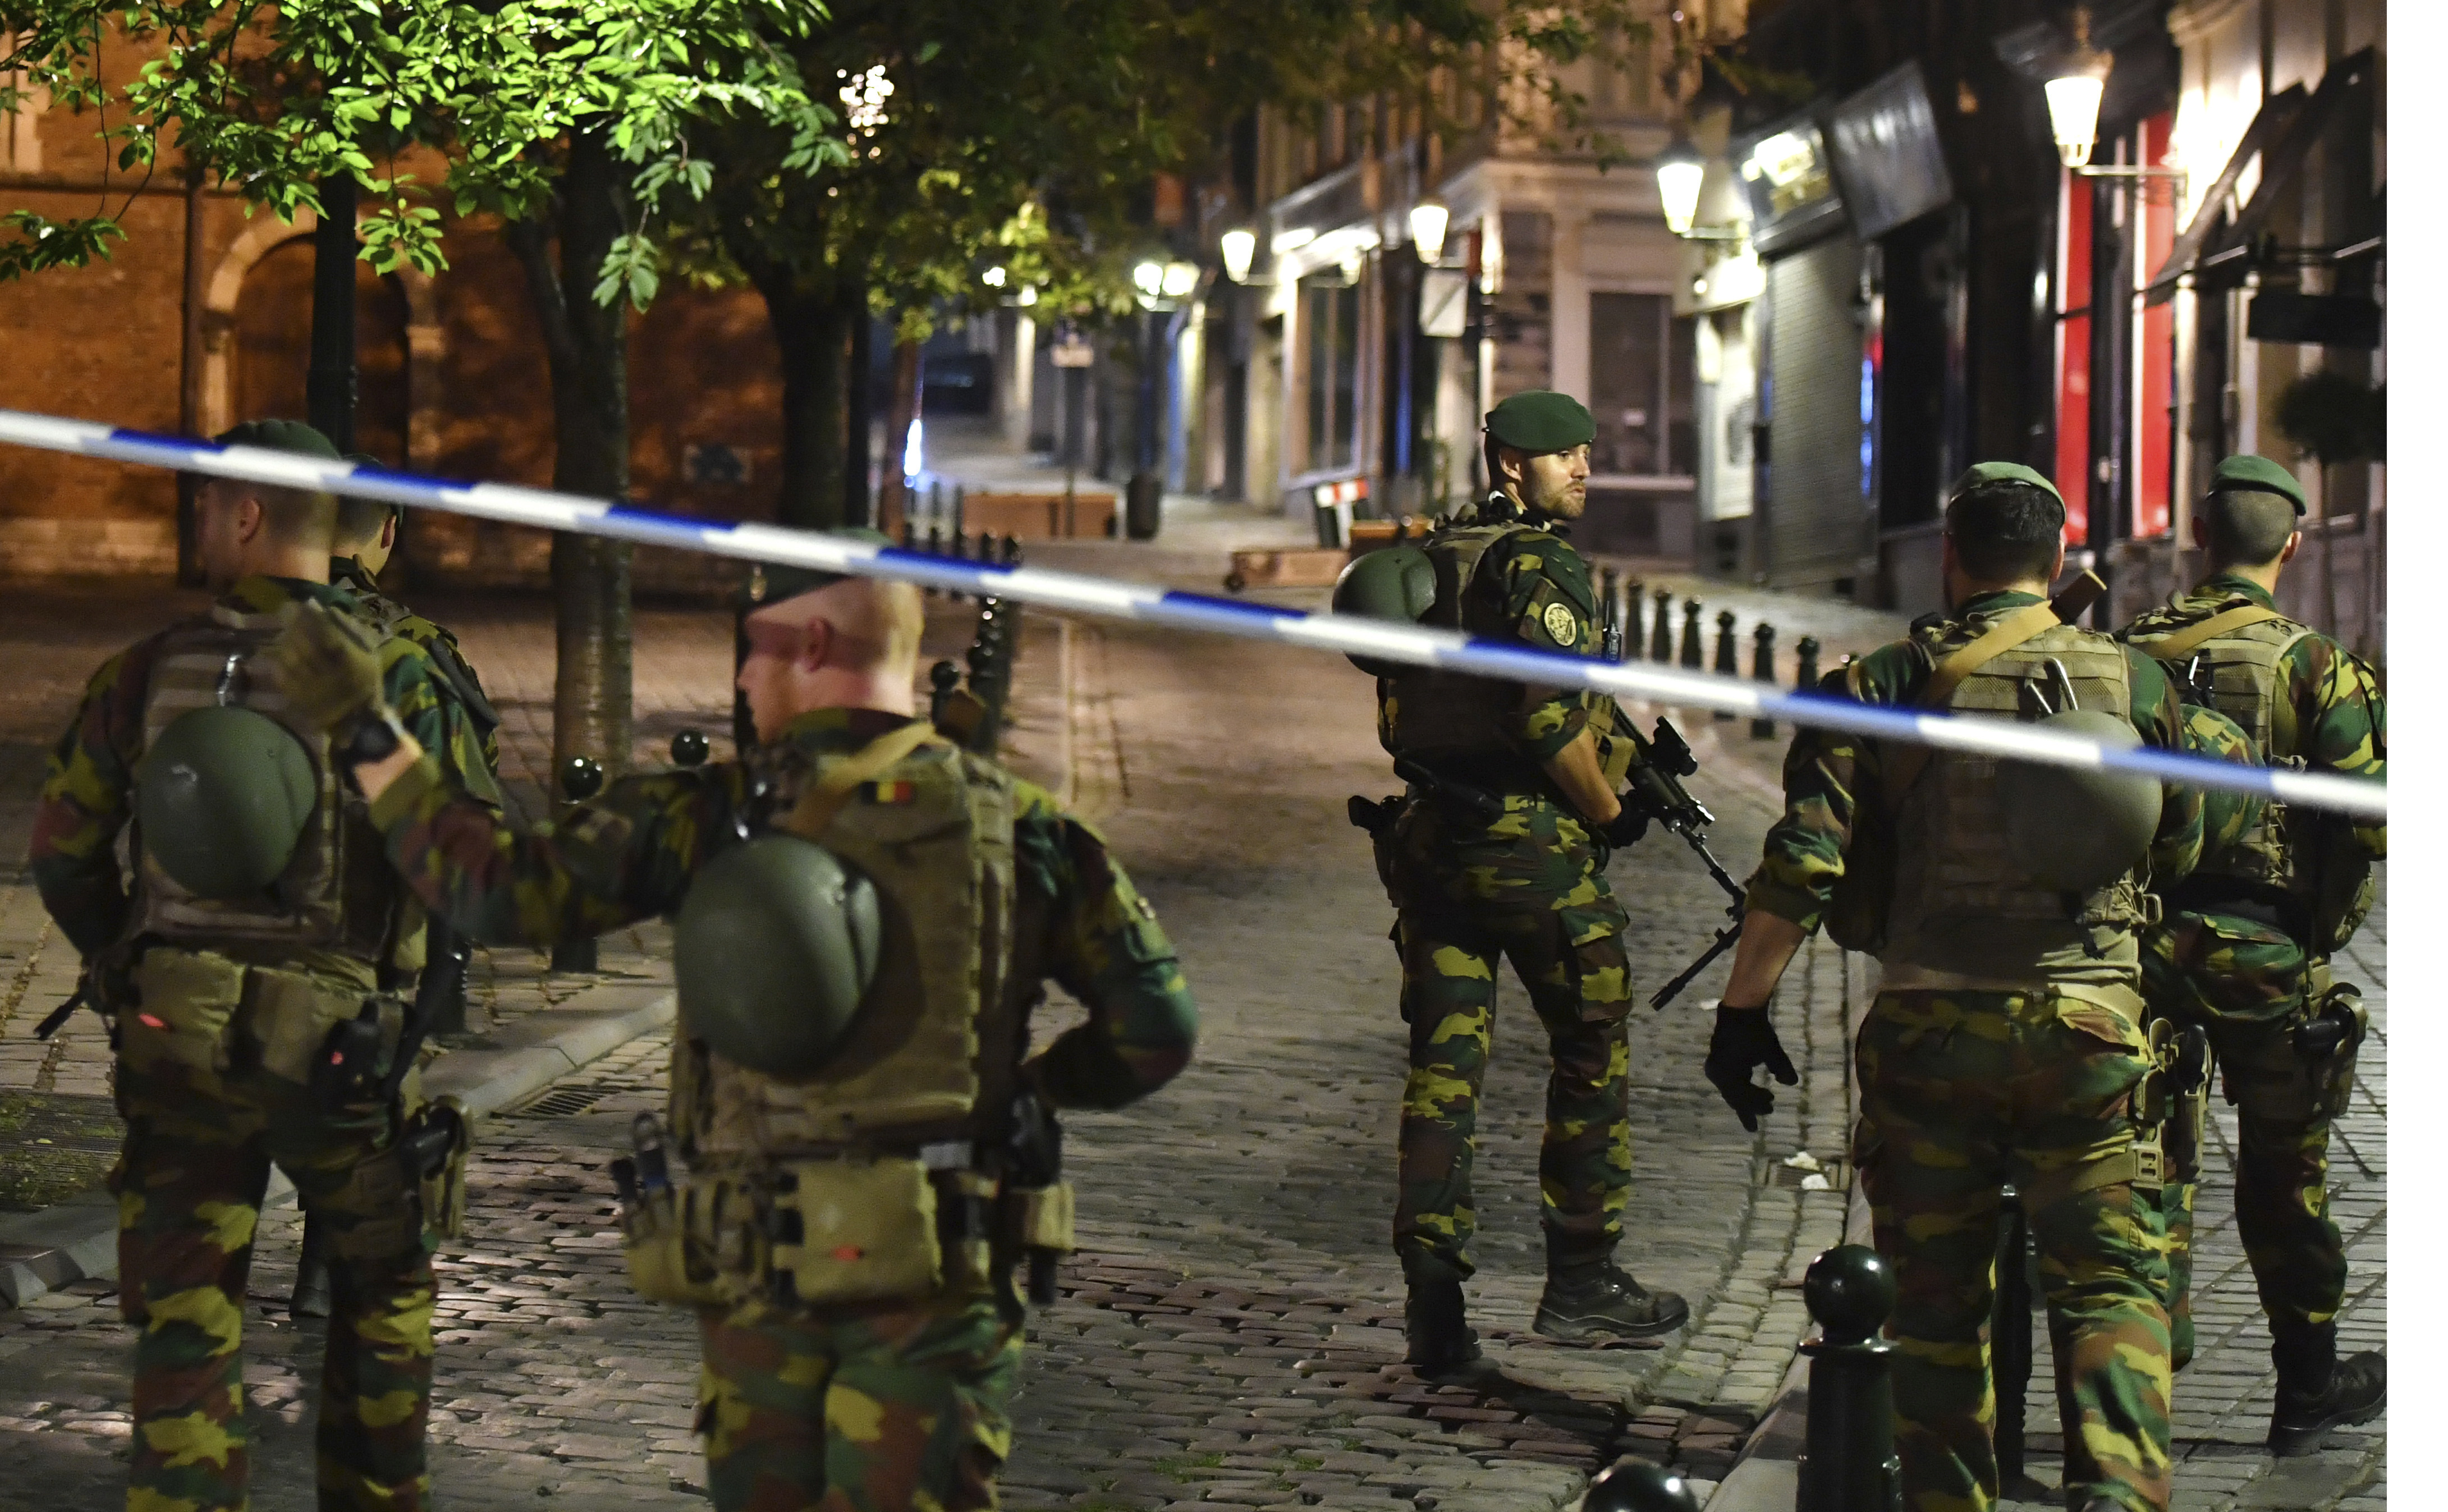 Belgian Army soldiers patrol near Central Station in Brussels after a reported explosion on Tuesday, June 20, 2017. Belgian media are reporting that explosion-like noises have been heard at a Brussels train station, prompting the evacuation of a main square. (AP Photo/Geert Vanden Wijngaert)